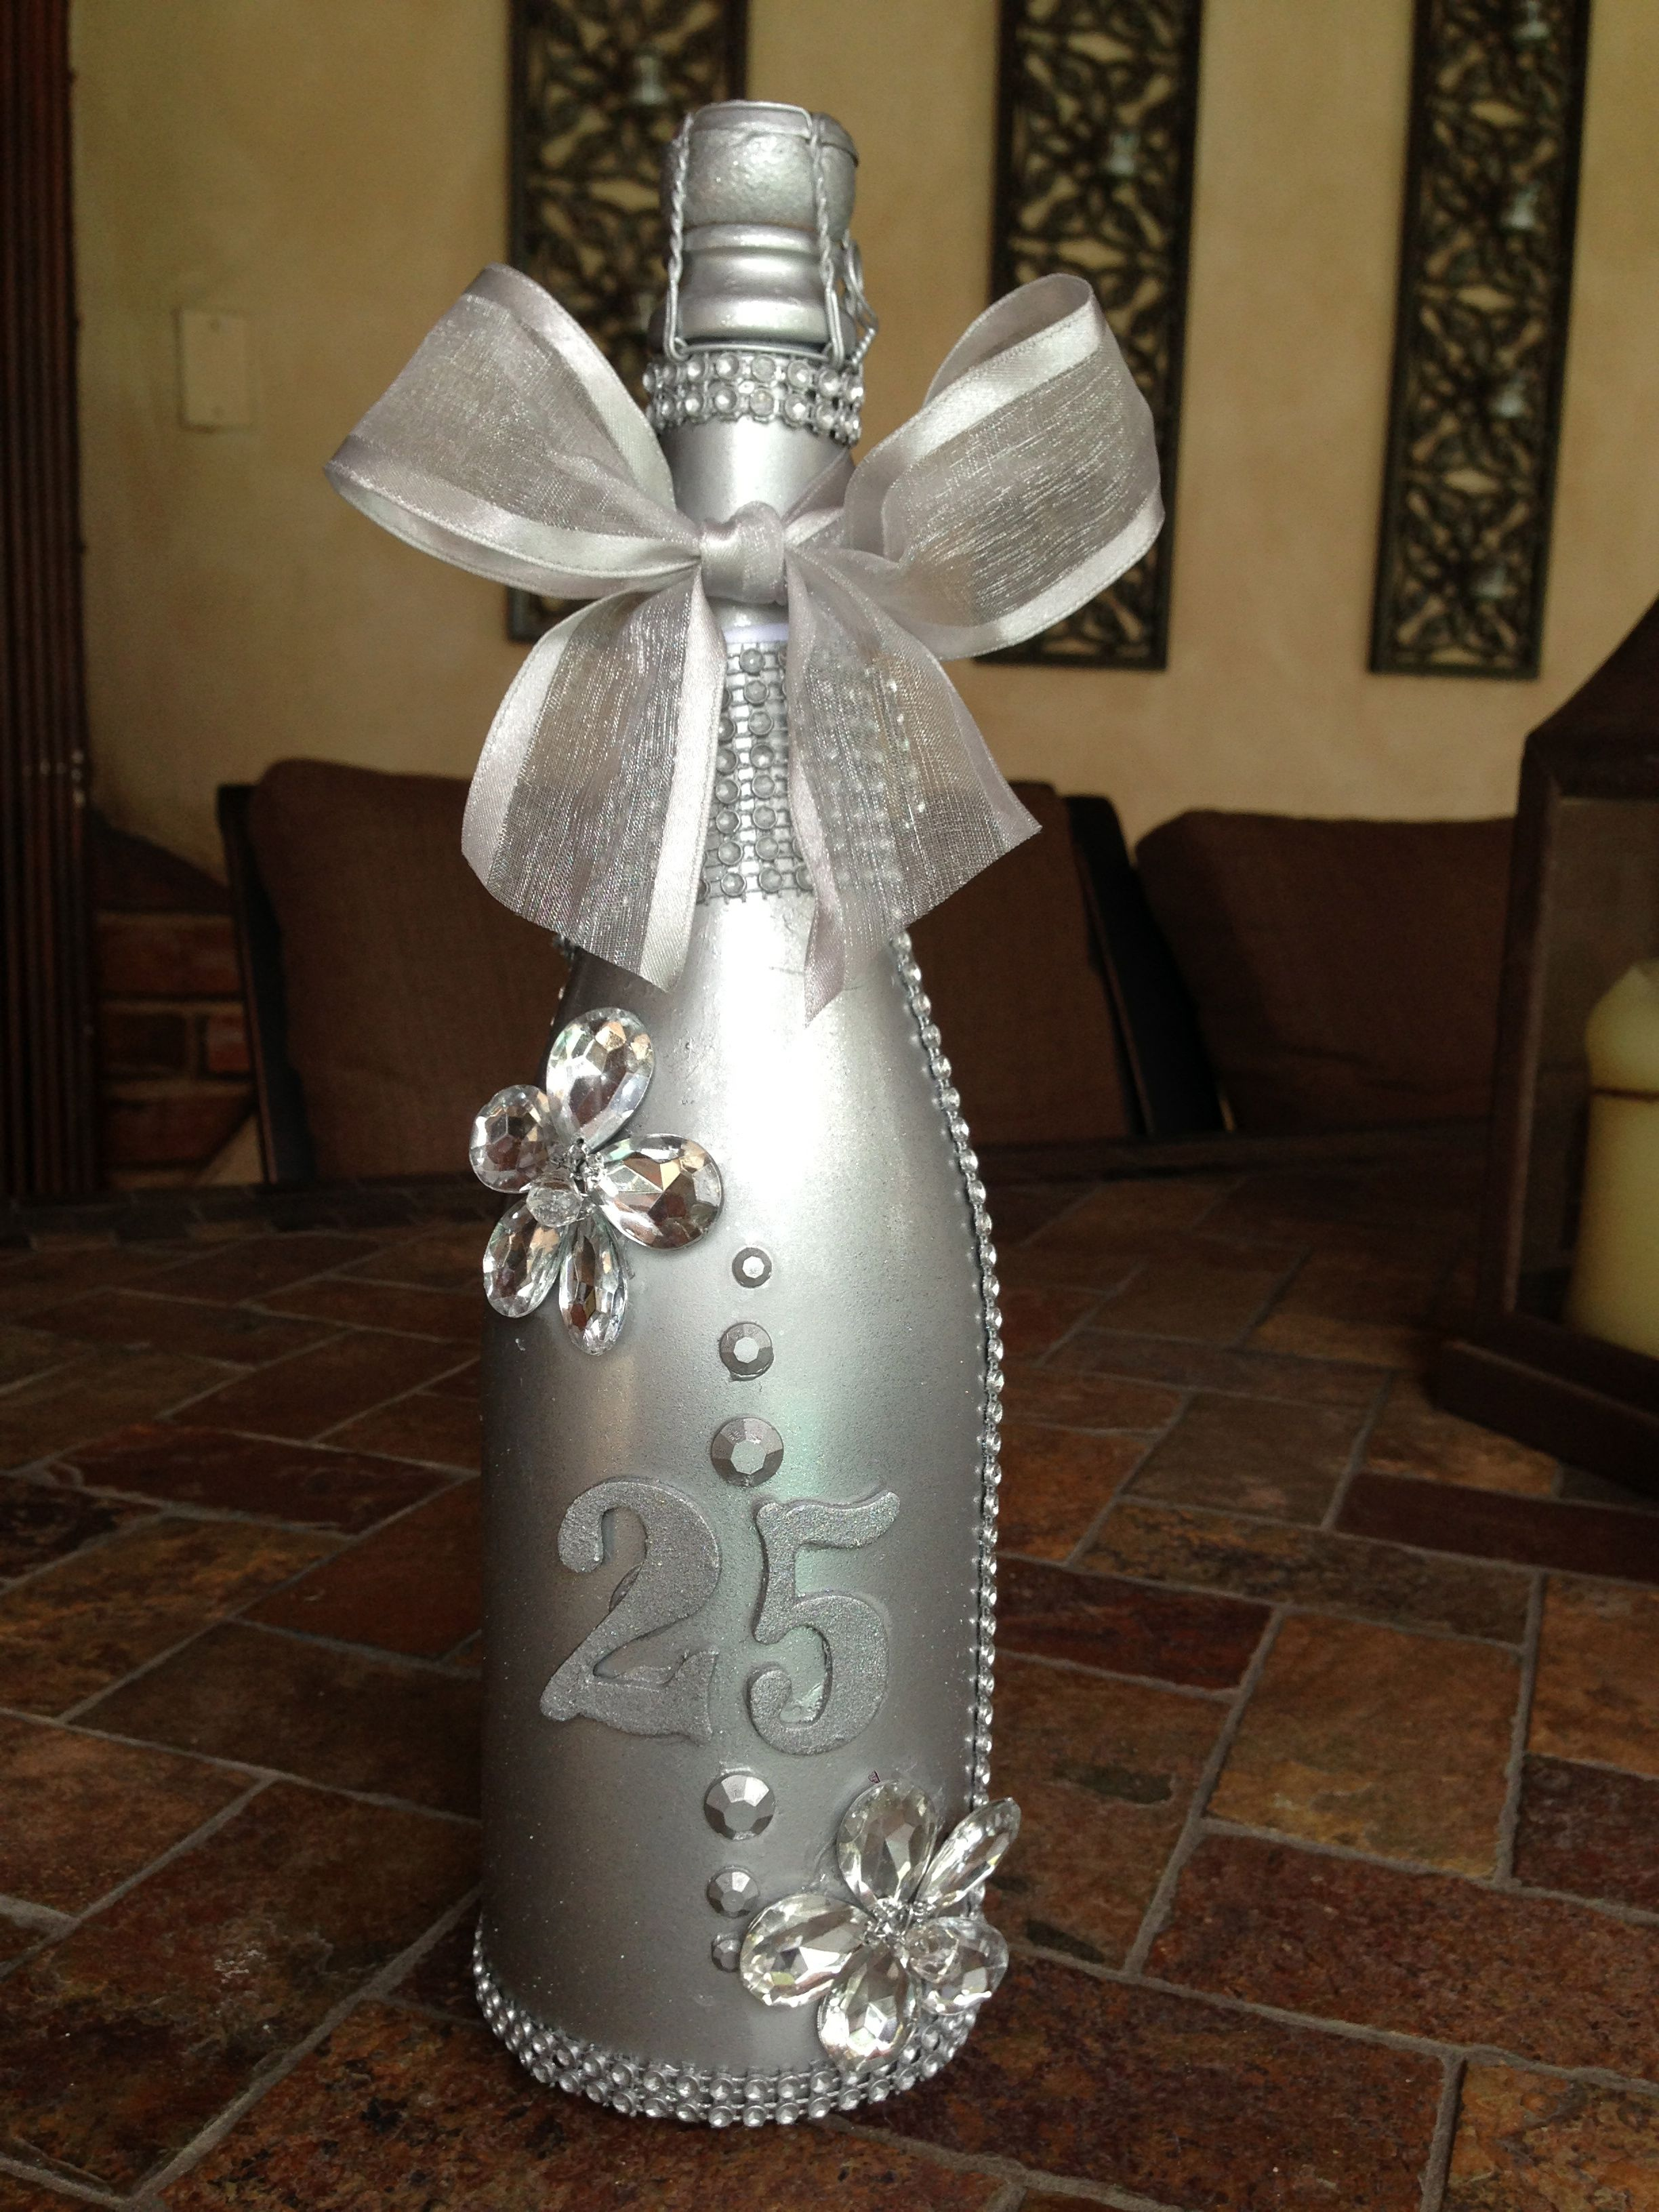 Order This Unique And Memorable Gift For A 25th